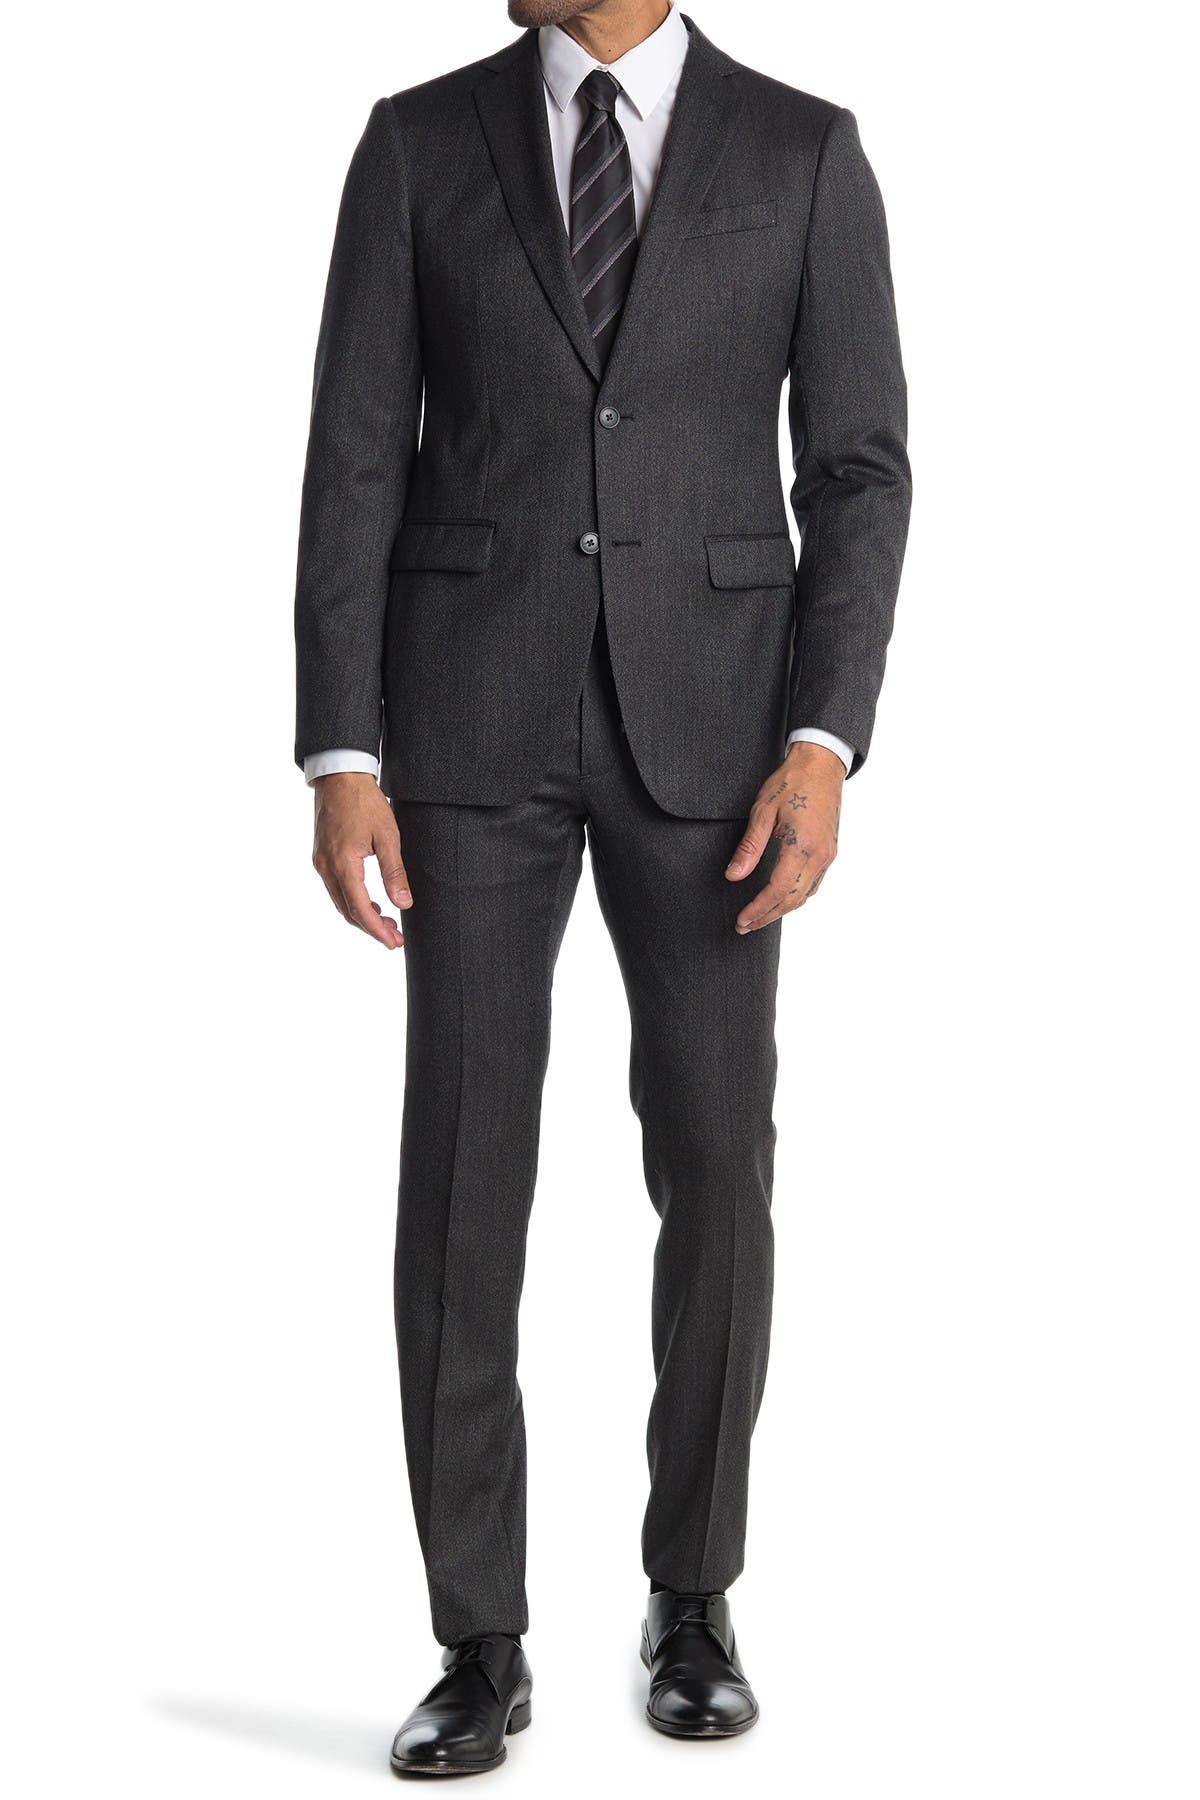 Image of John Varvatos Collection Nested Charcoal Solid Two Button Notch Lapel Wool Suit